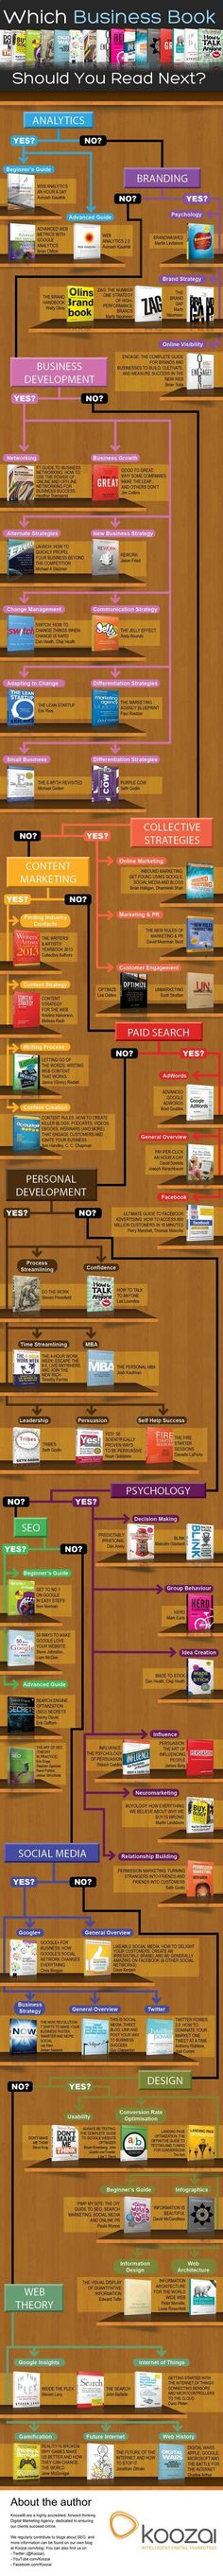 Best Business Books to Read 12 Types of eBooks to Use for Growing Your Business